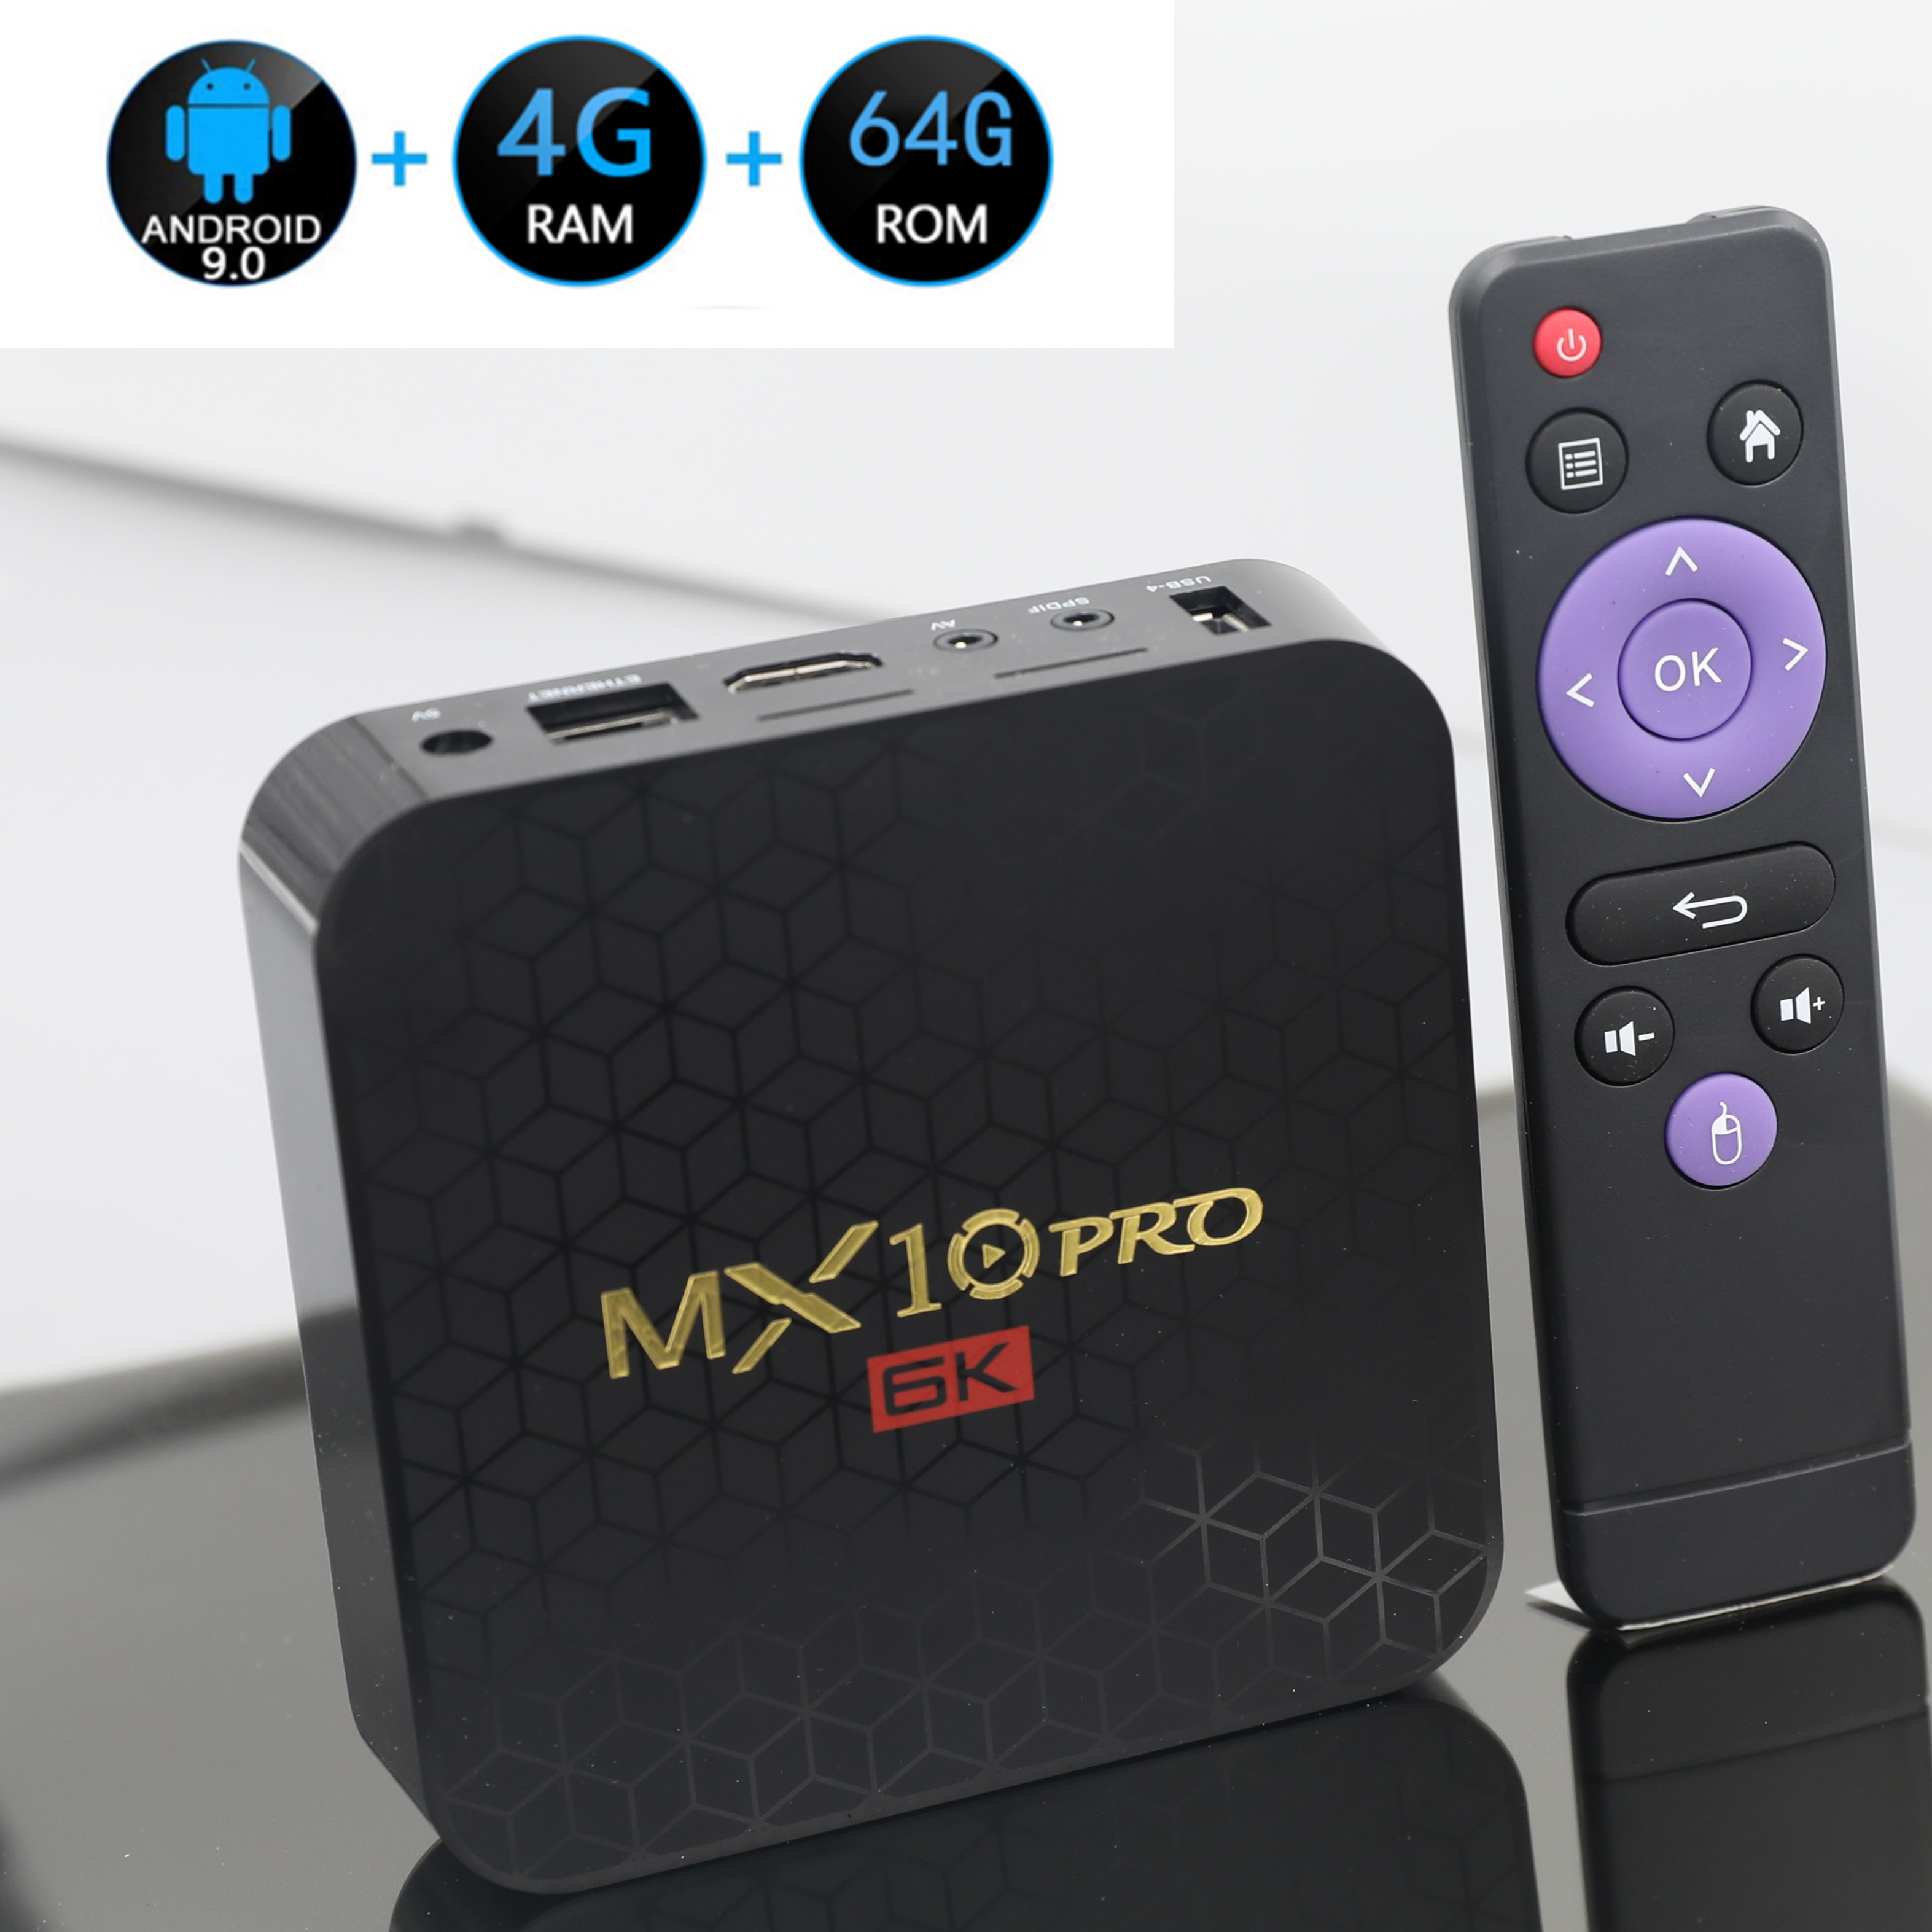 Smart-Media-Player Tv-Box Support Wifi Quad-Core Allwinner 6K H.265 Android 9.0 Mx10-Pro title=